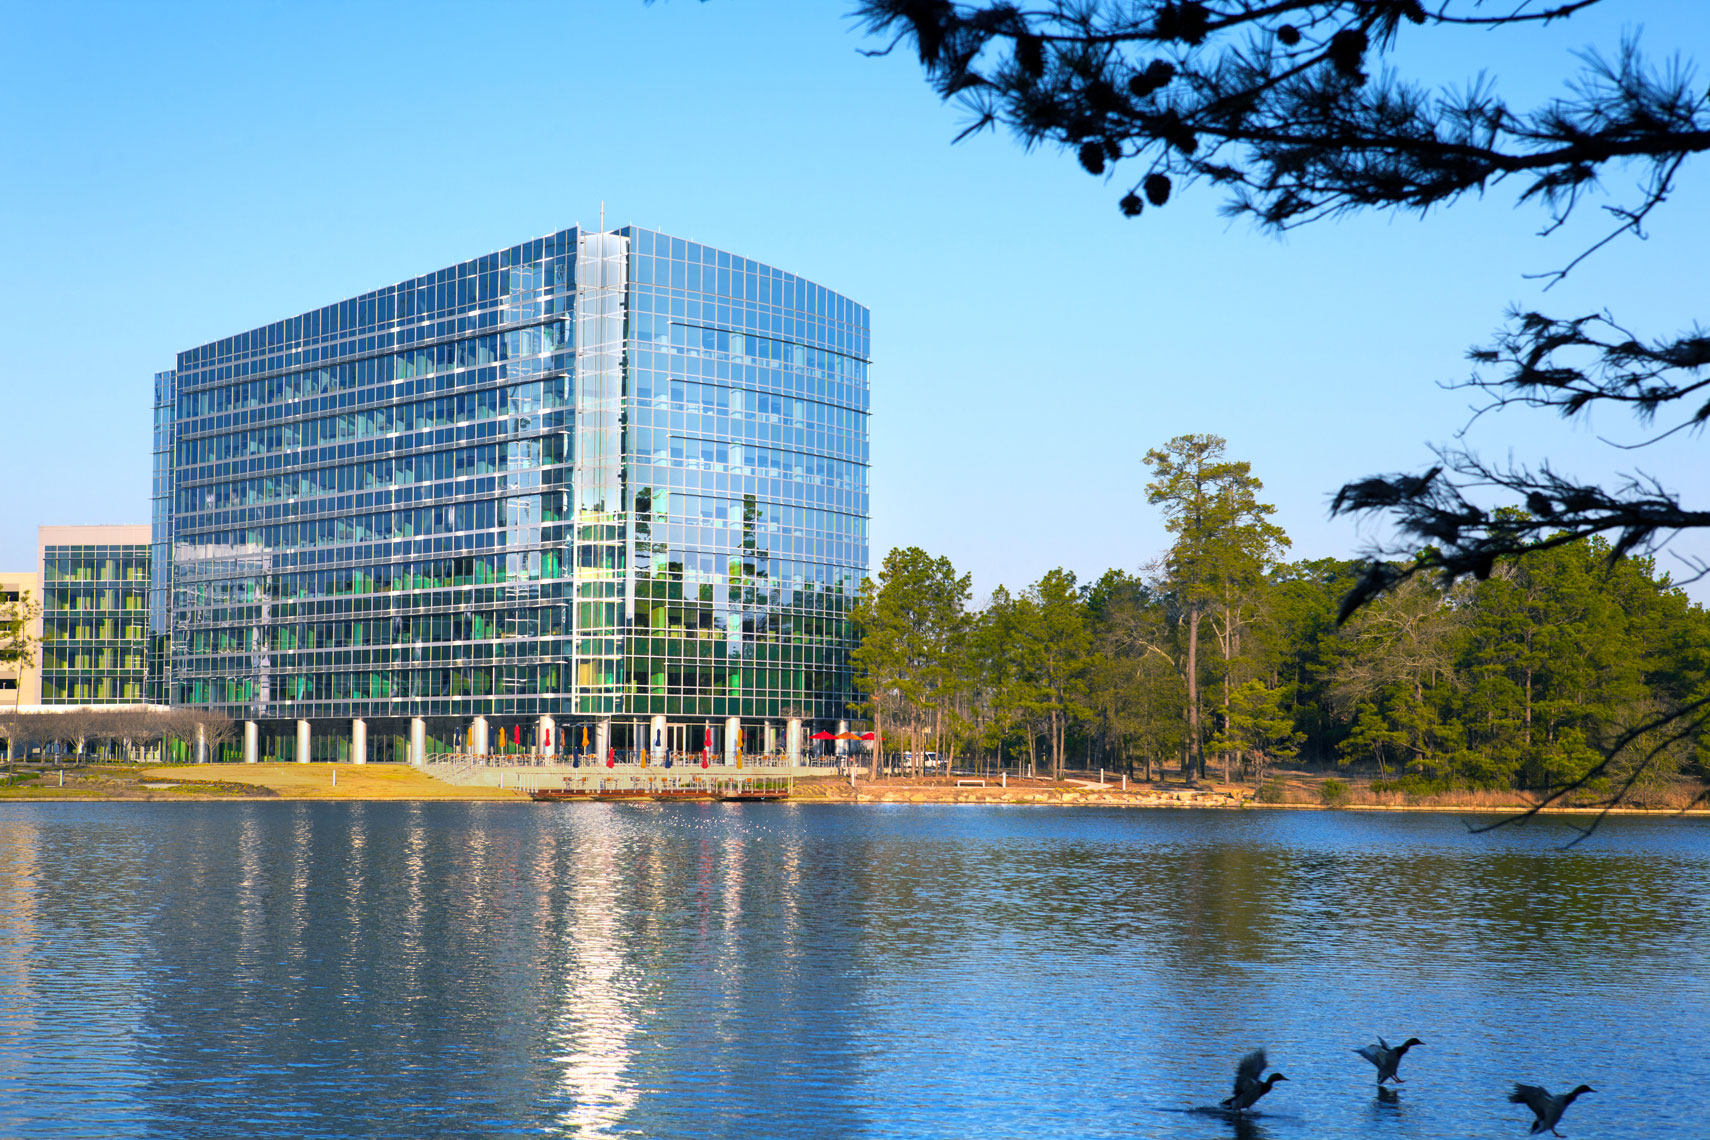 Architectural Photography of a midrise Office Building on a lake with ducks